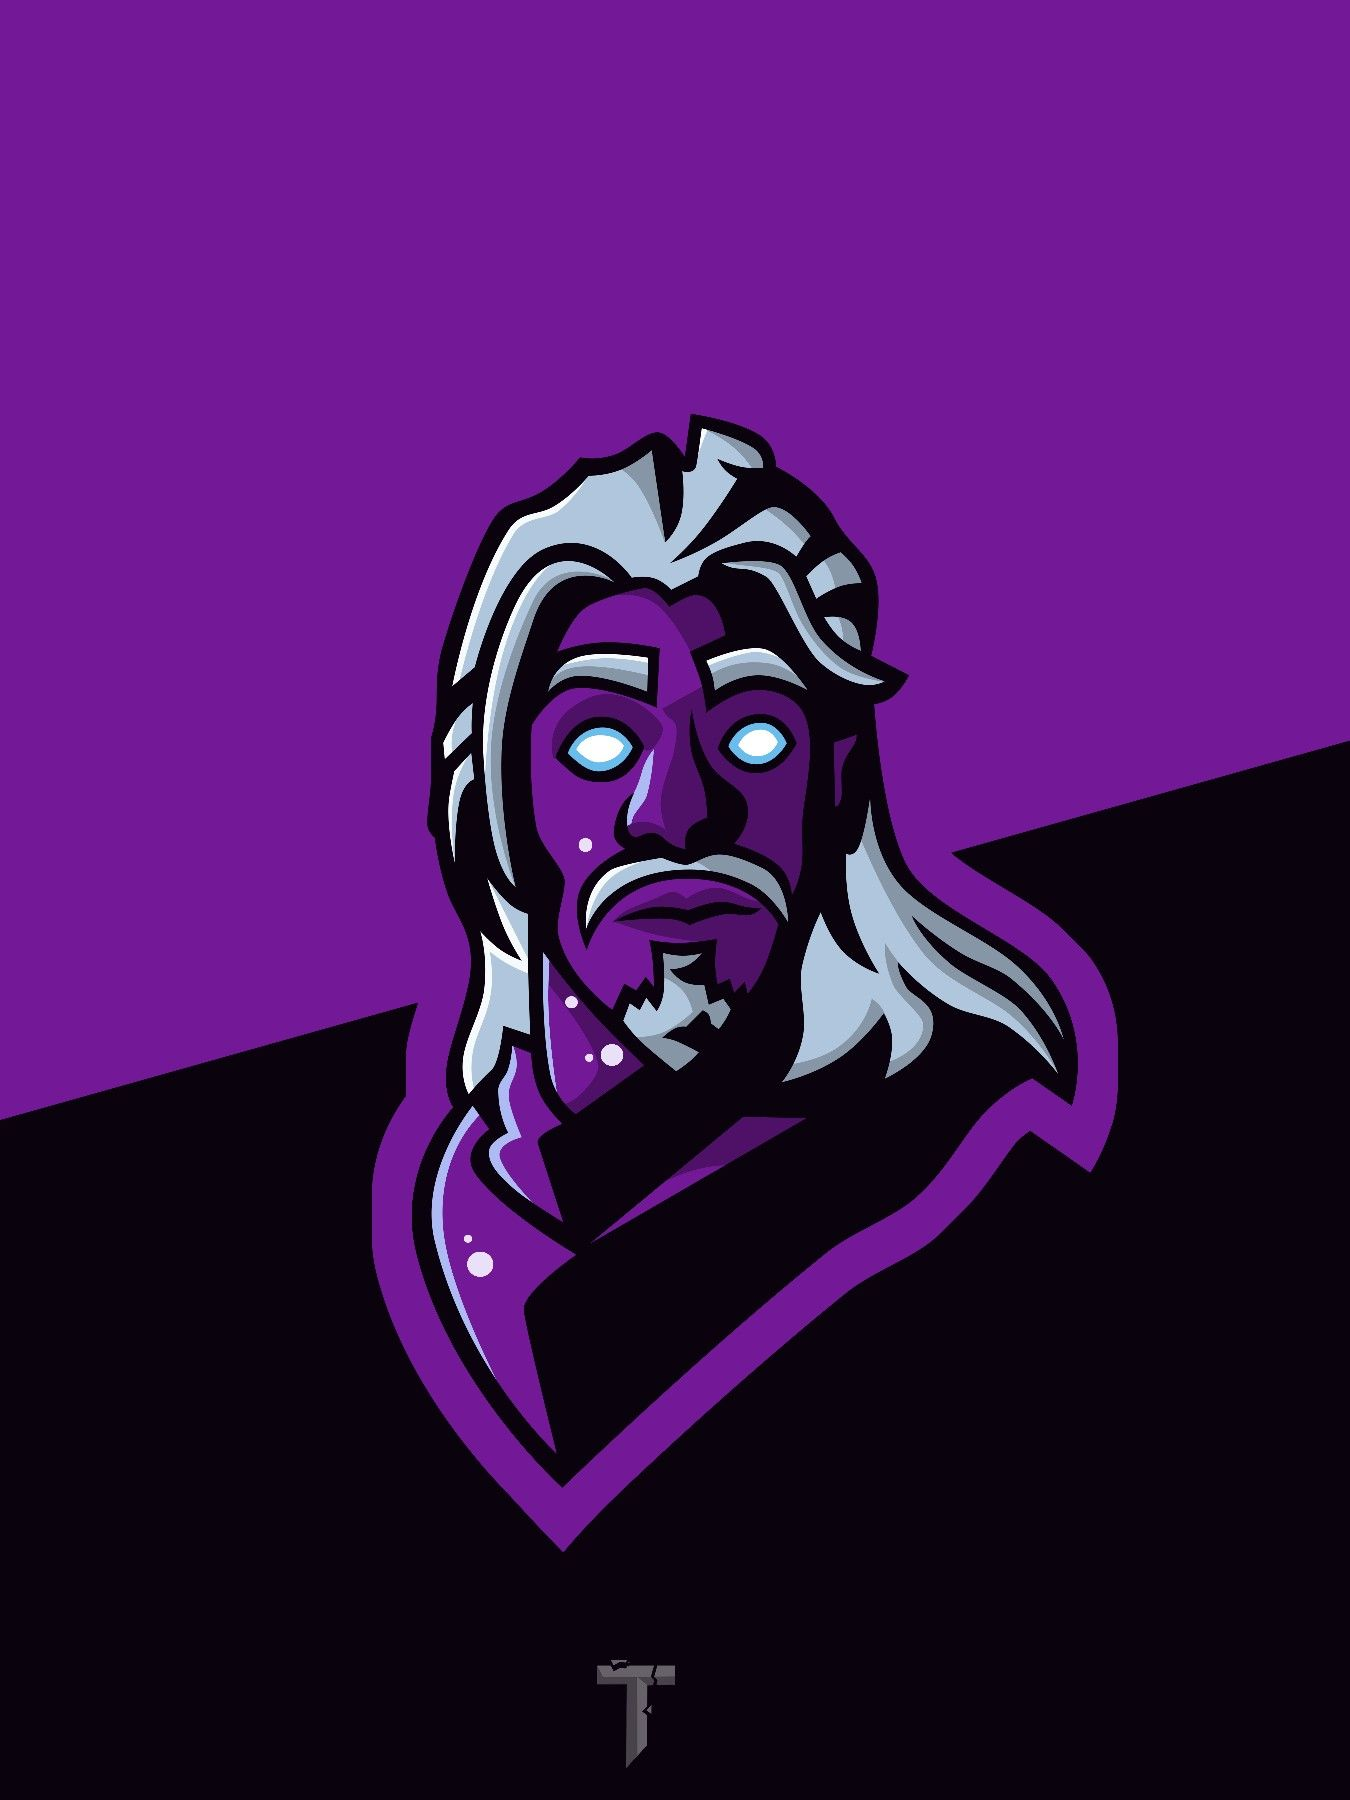 Galaxy Skin Mascot Logo Fortnite Background Wallpaper Png Papeis